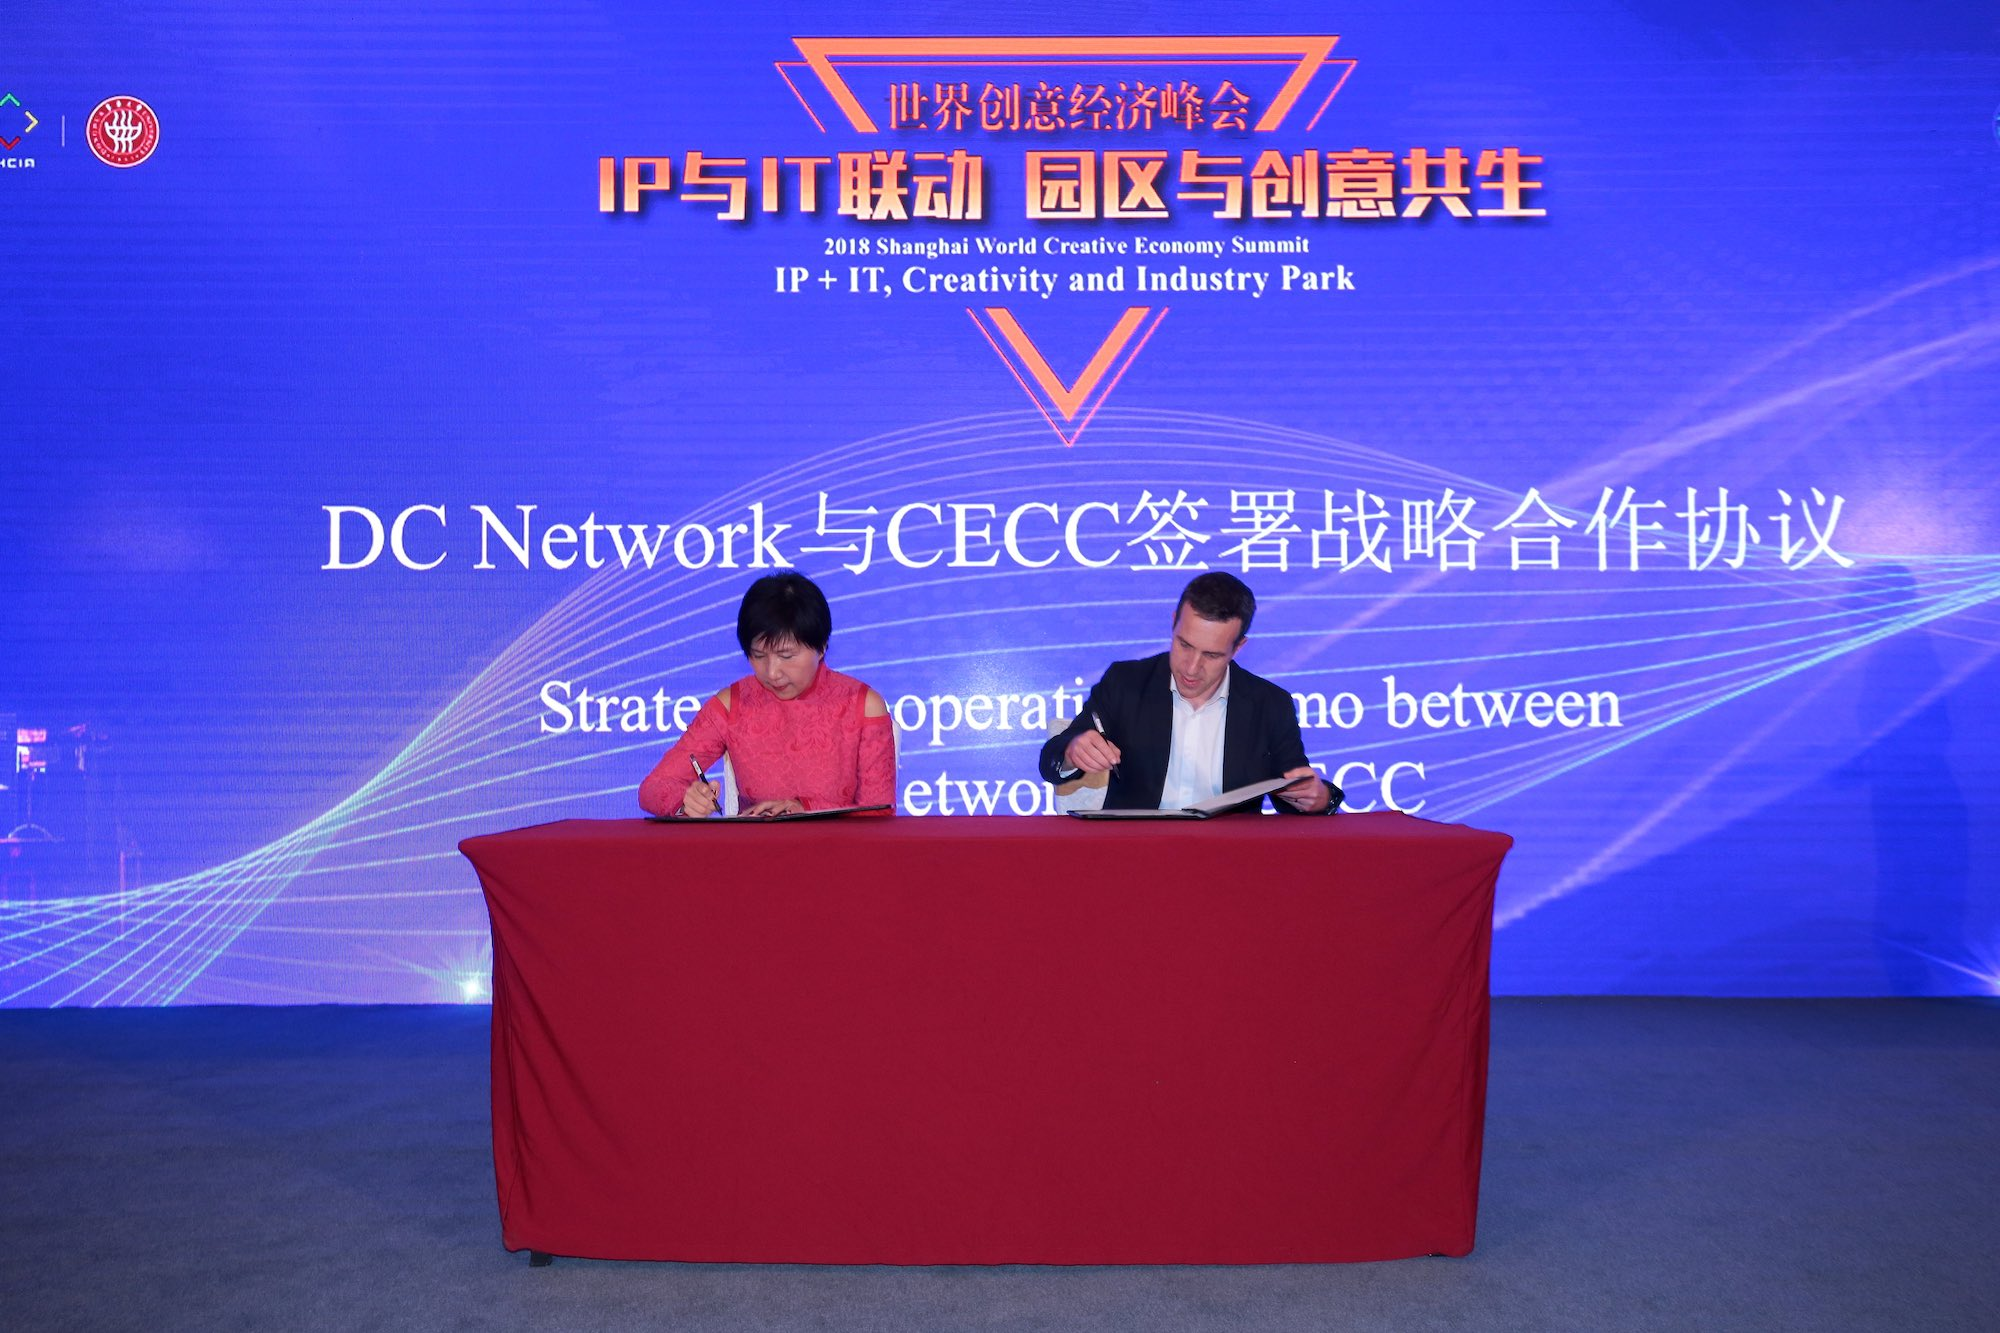 Cooperation between CECC and DC Network officially confirmed